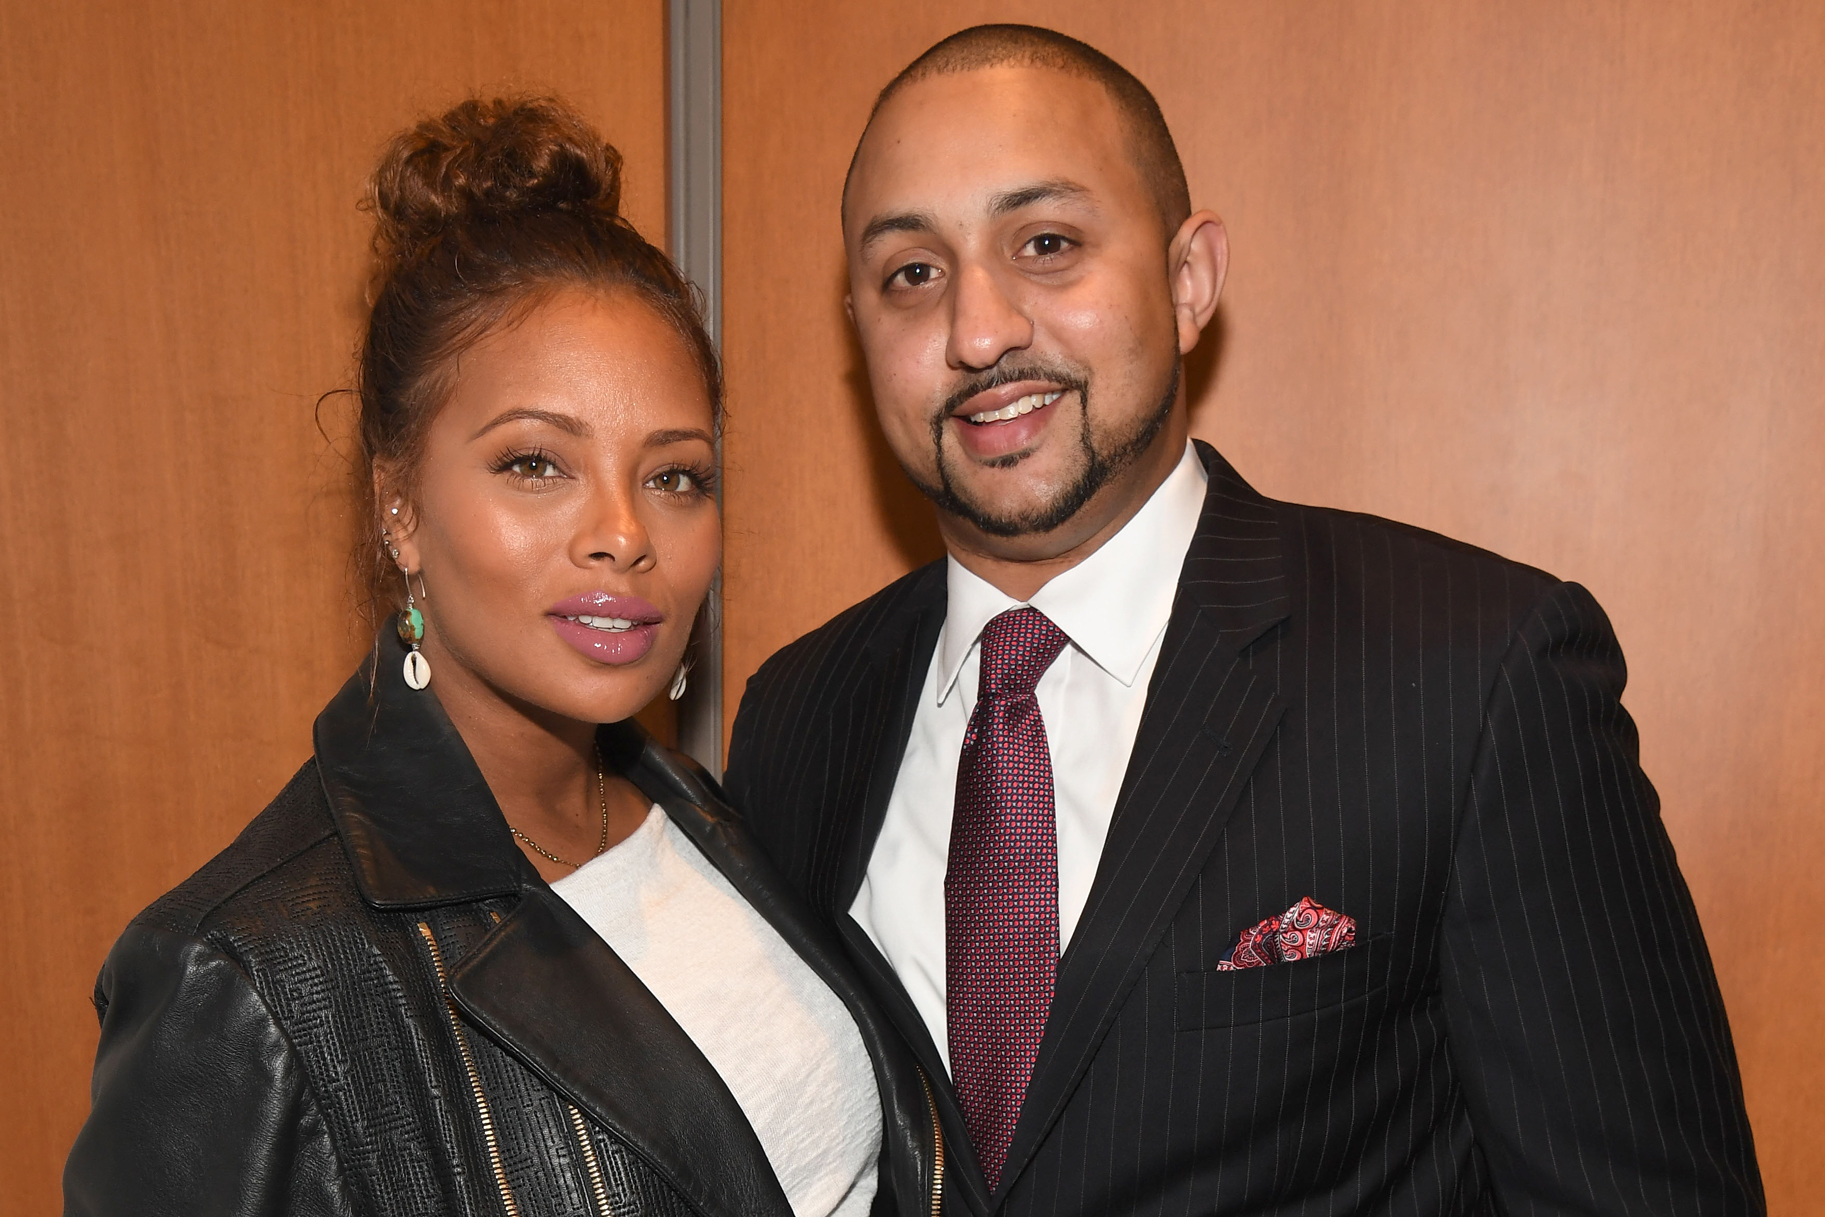 """Eva Marcille's Husband Joining Peaceful Protesters, Says He'll """"Lend My Voice for Real Legislative Change"""""""